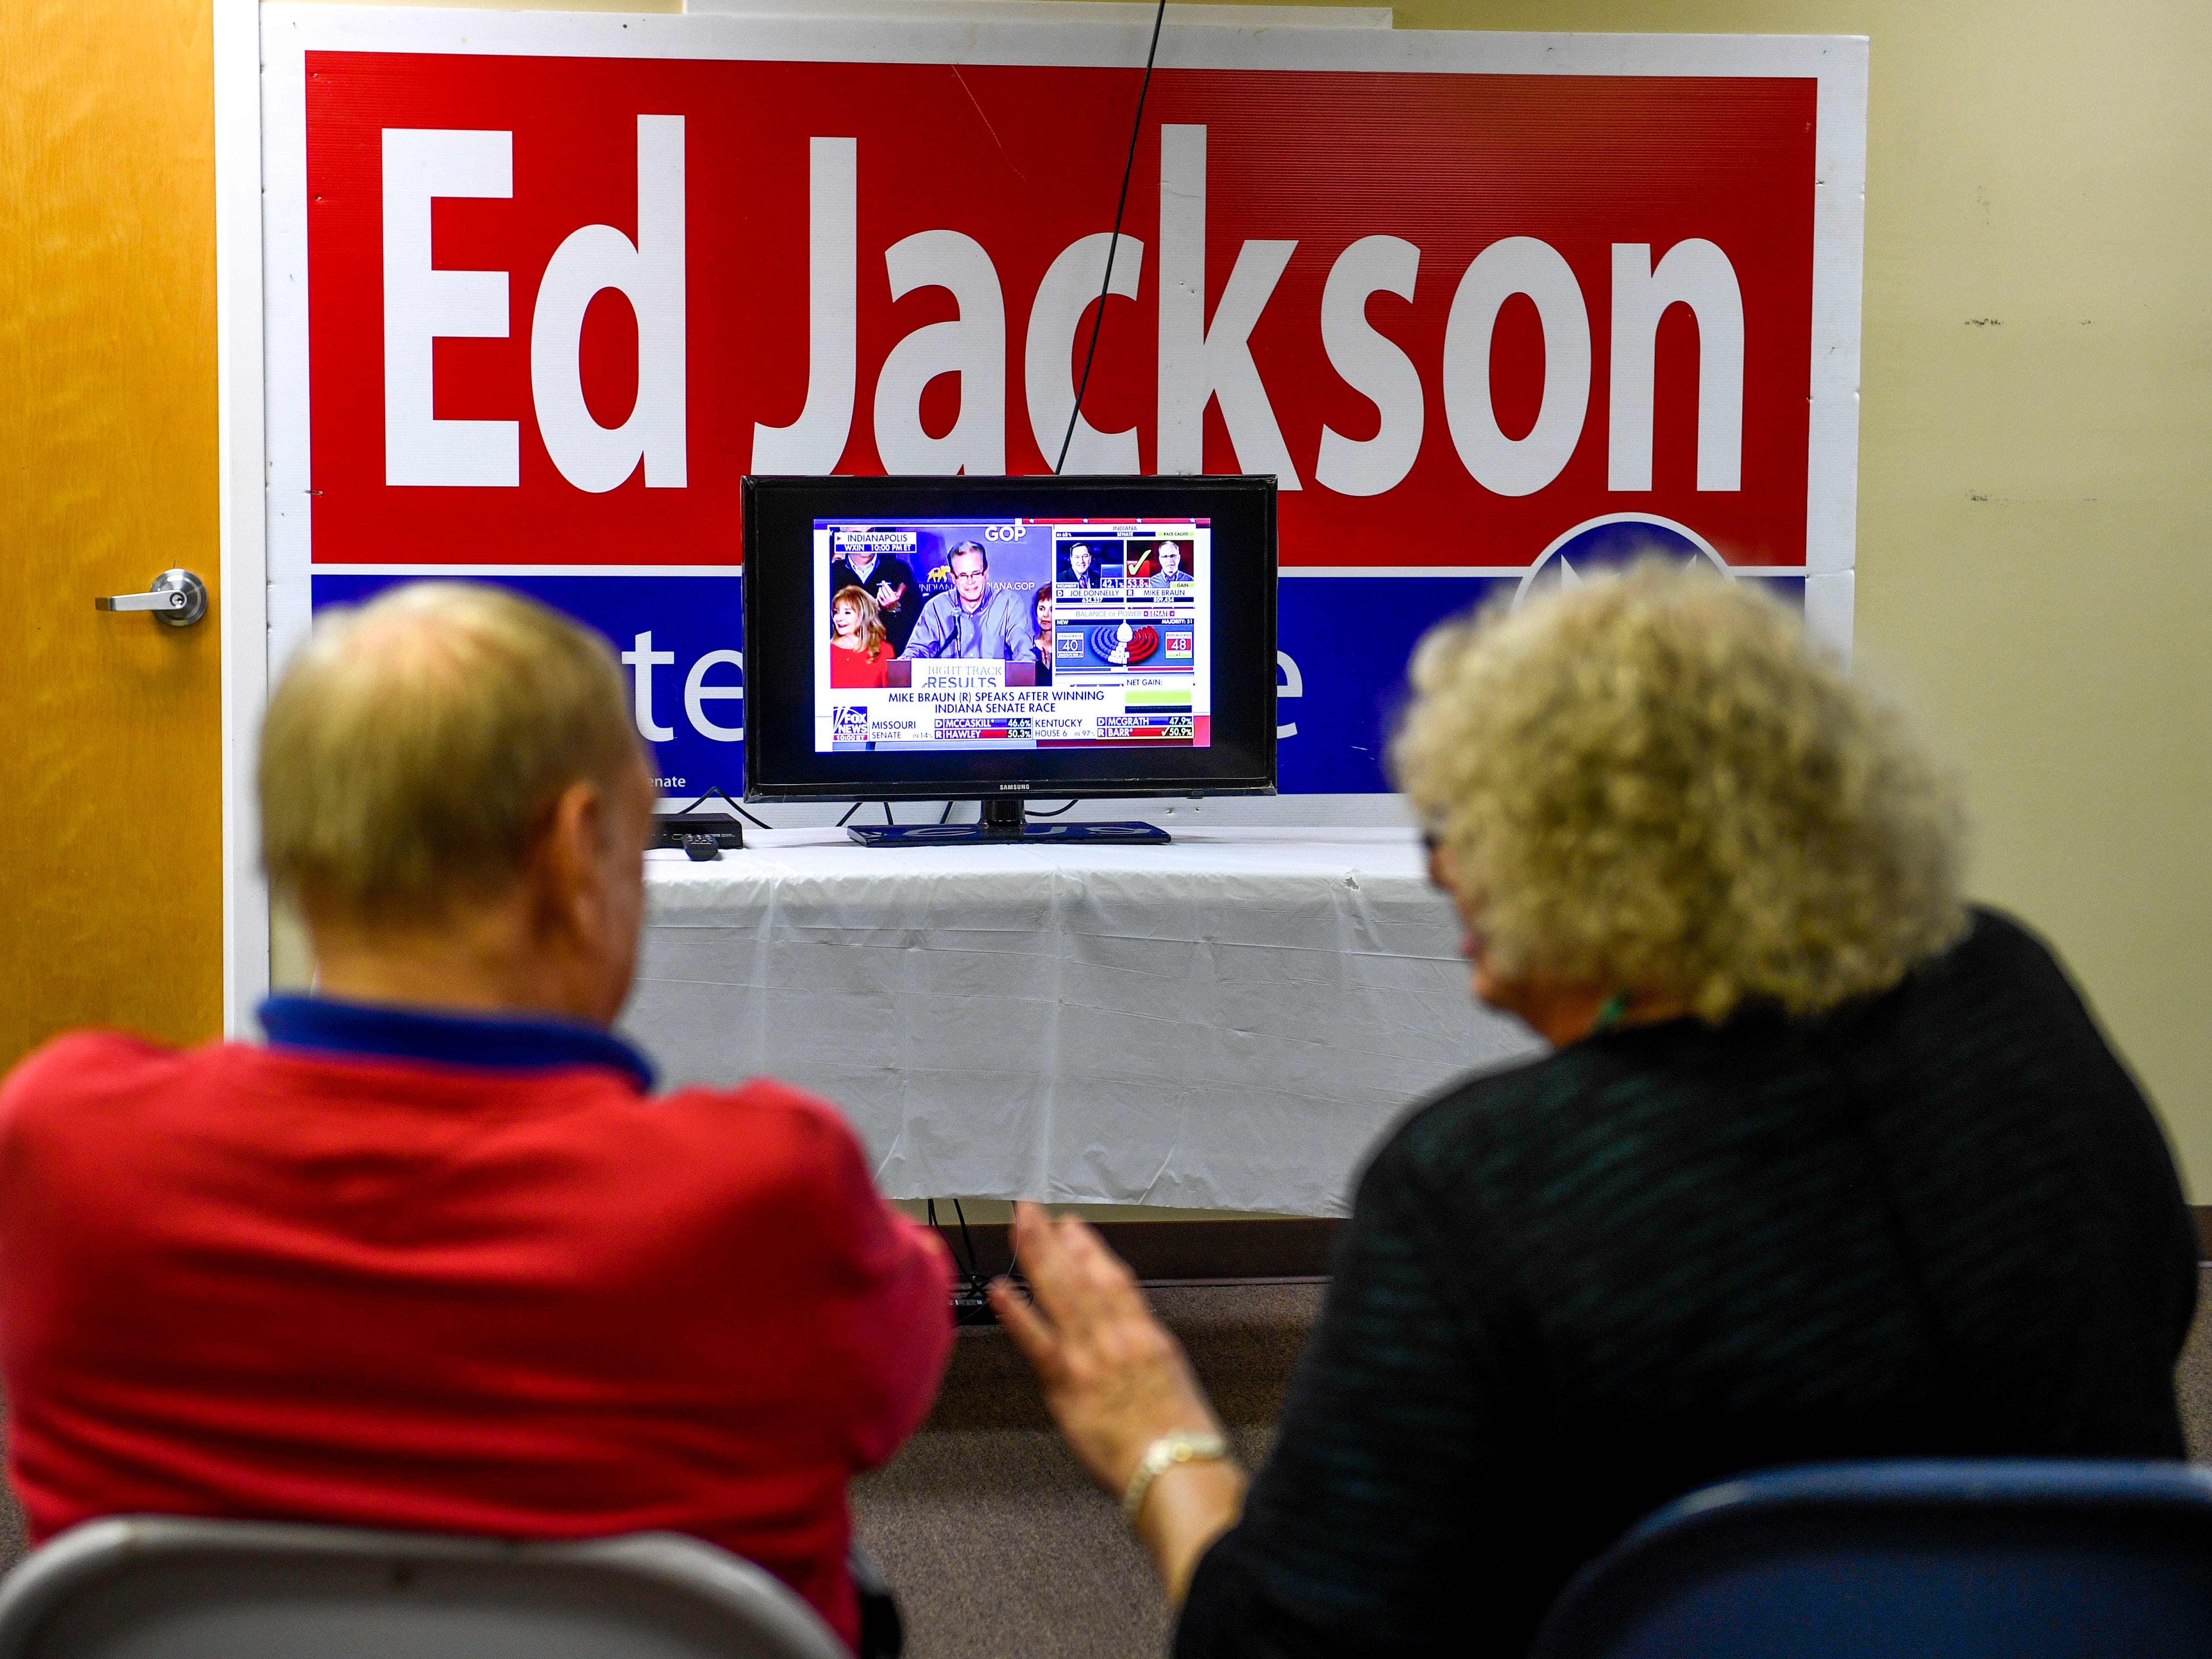 Tom Beeson, left, speaks with Lynn Sorrell, mother in law of Chris Todd, during an election night watch party at Madison County Republican Headquarters in Jackson, Tenn., on Tuesday, Nov. 6, 2018.